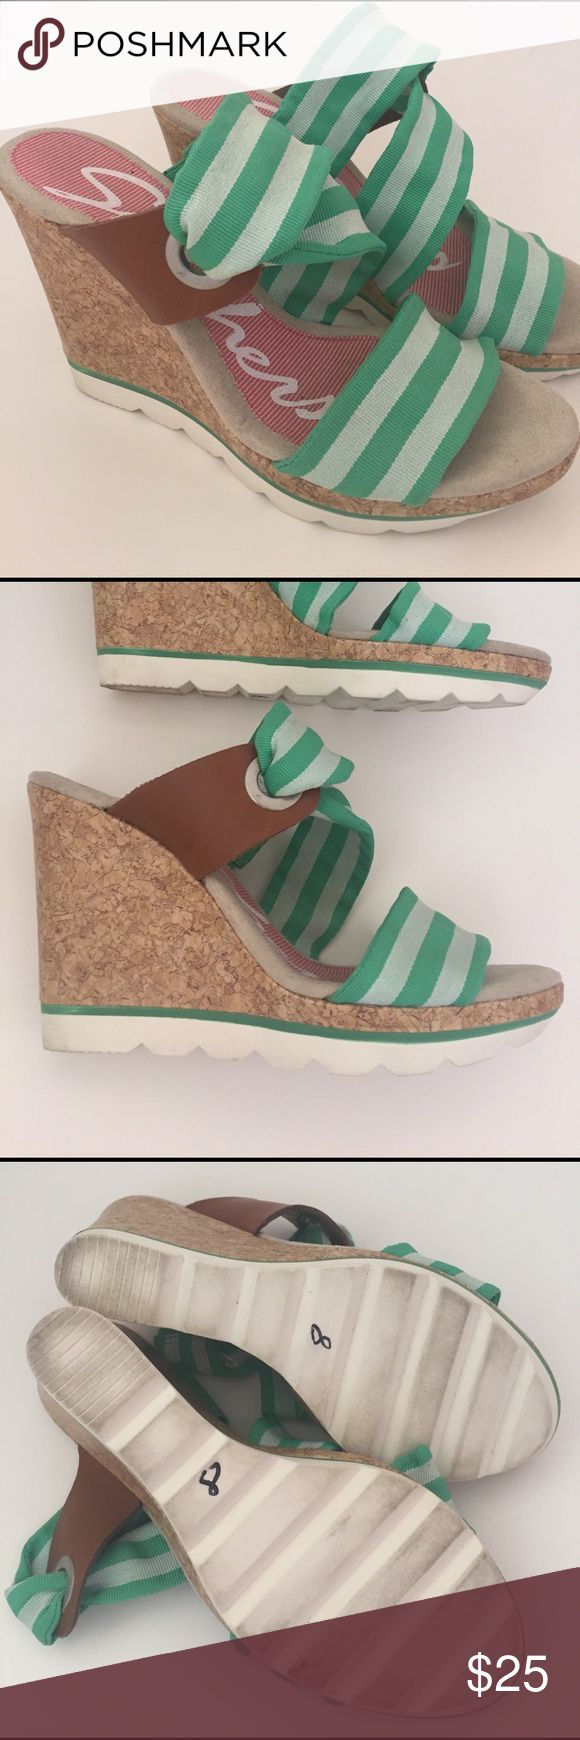 """Skechers Cork Wedge Sandals Super comfortable and adorable. Green and white fabric straps. Worn in the house only for a short time. Like new. 4"""" heel. Skechers Shoes Sandals"""